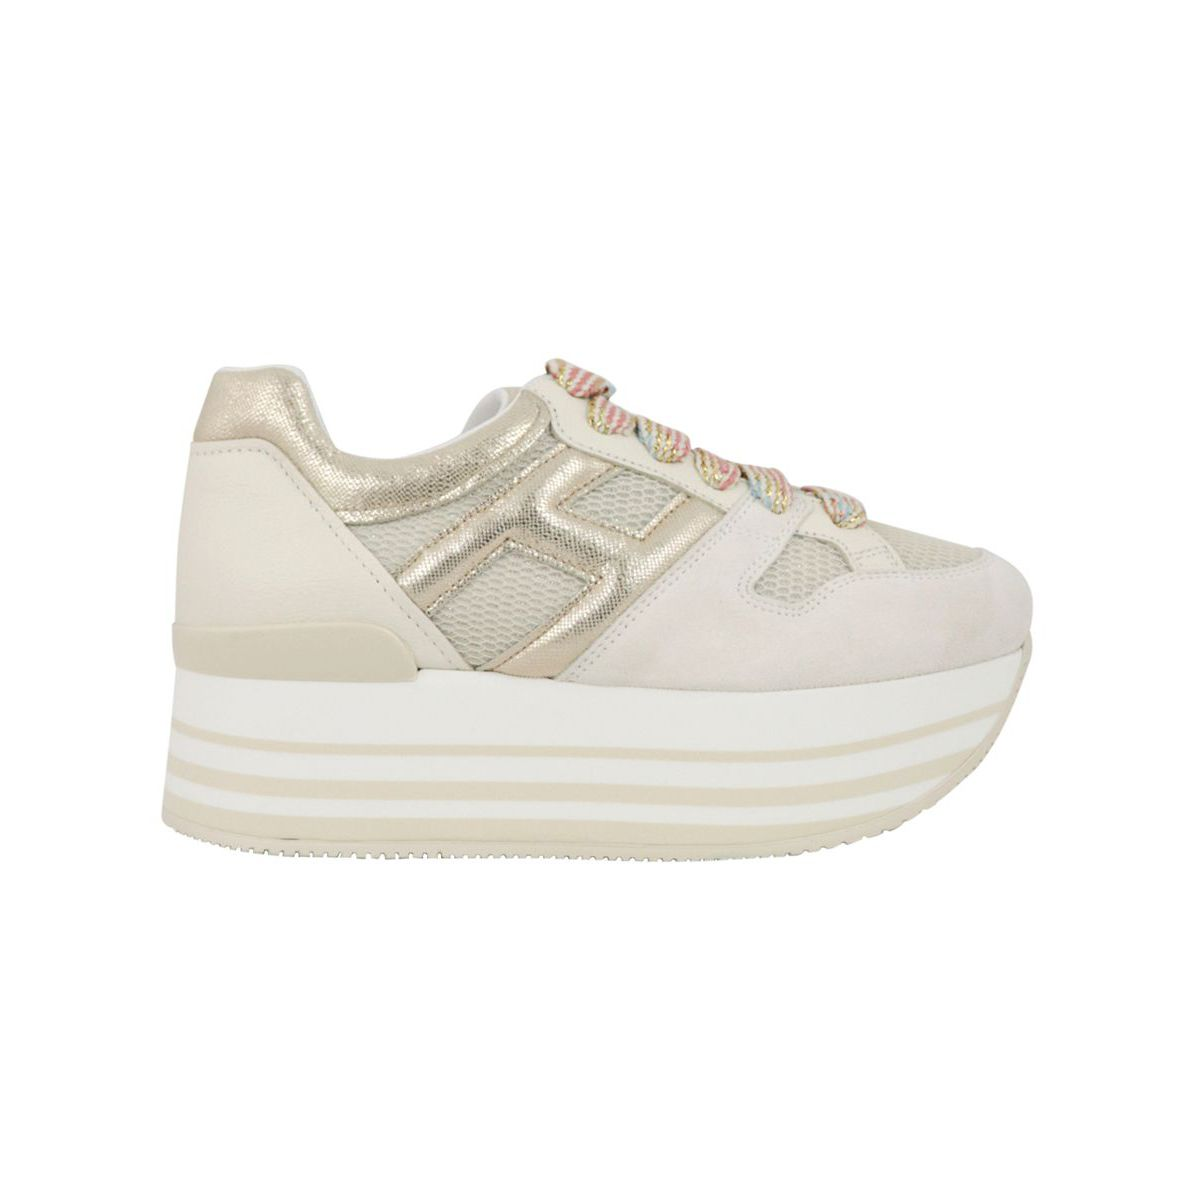 Suede platform sneakers with H in lurex leather Gold Hogan